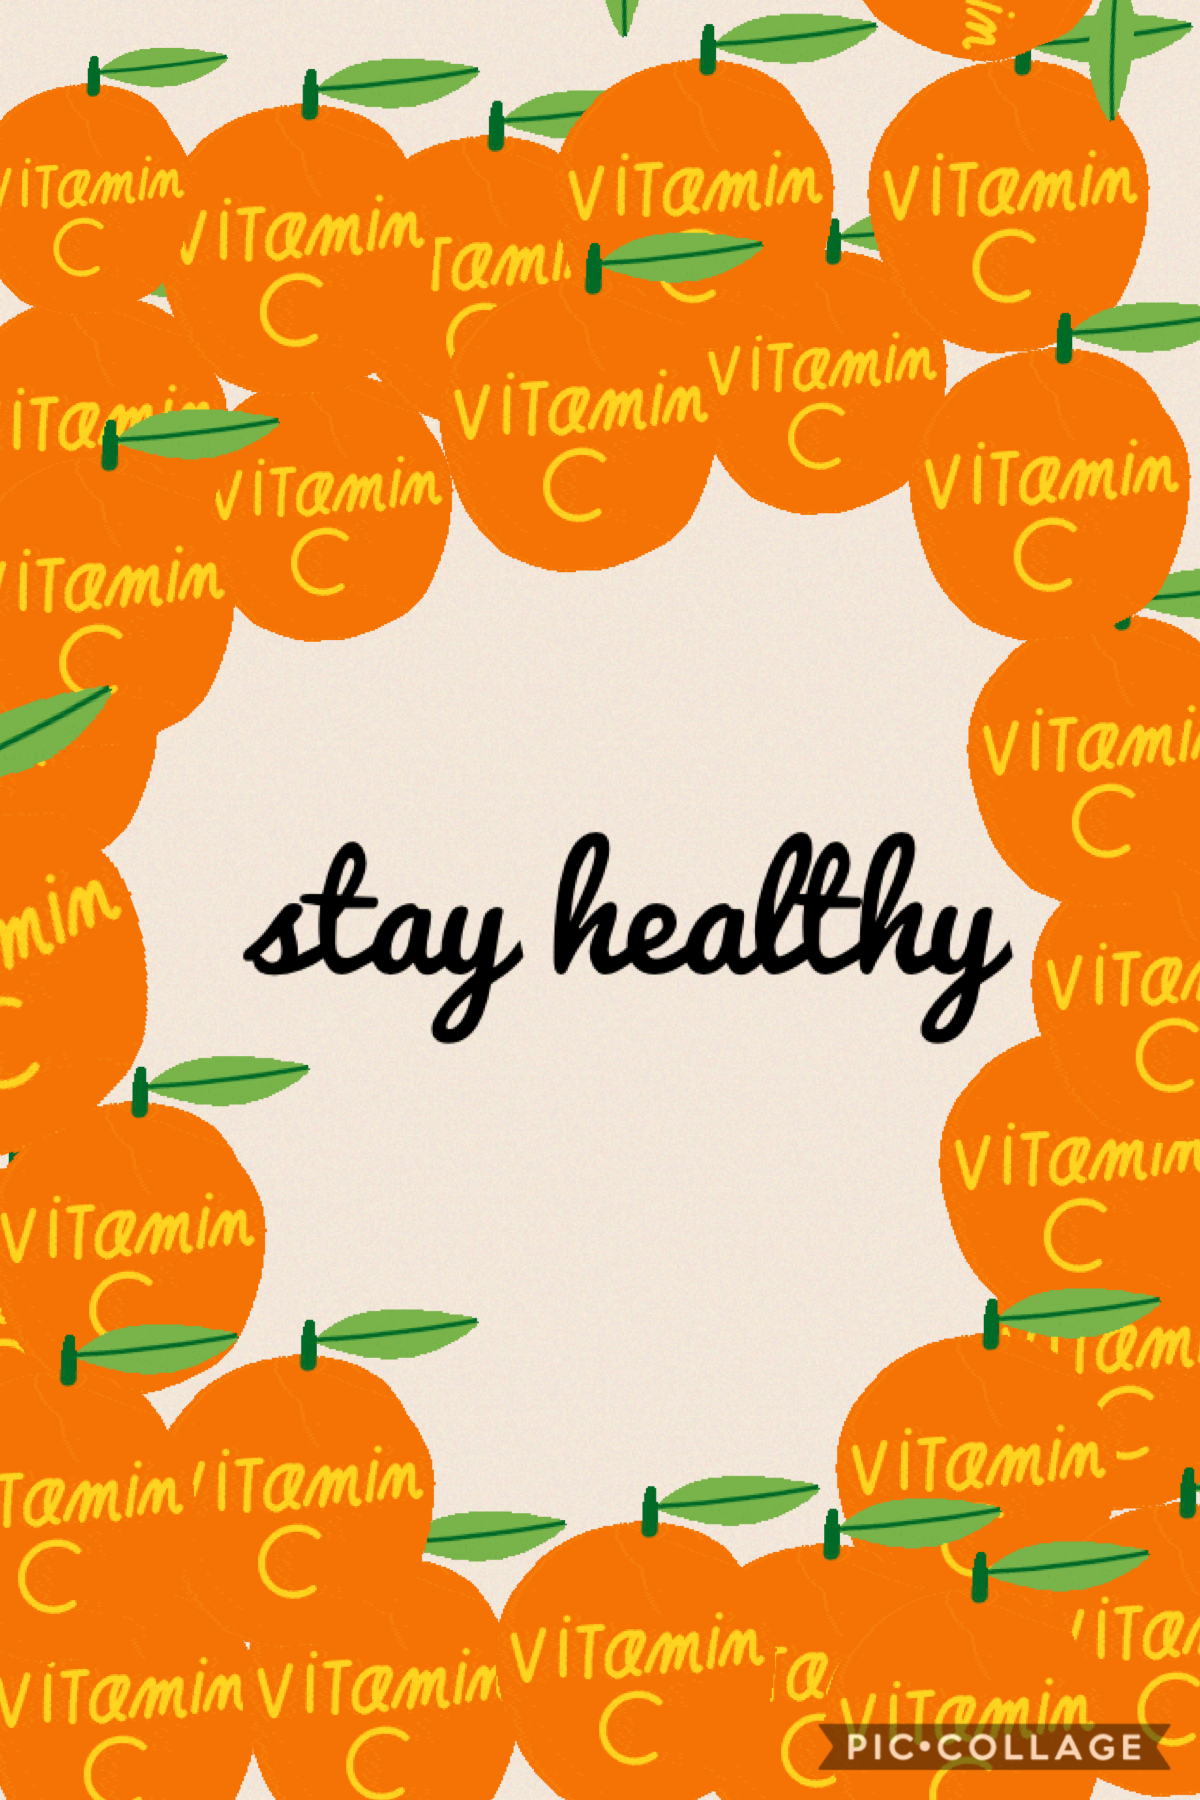 🍊TAP🍊  HEYA GUYS. i'm so sorry i haven't posted for a while. i've been busy with online school. make sure ya stay healthy!!!!